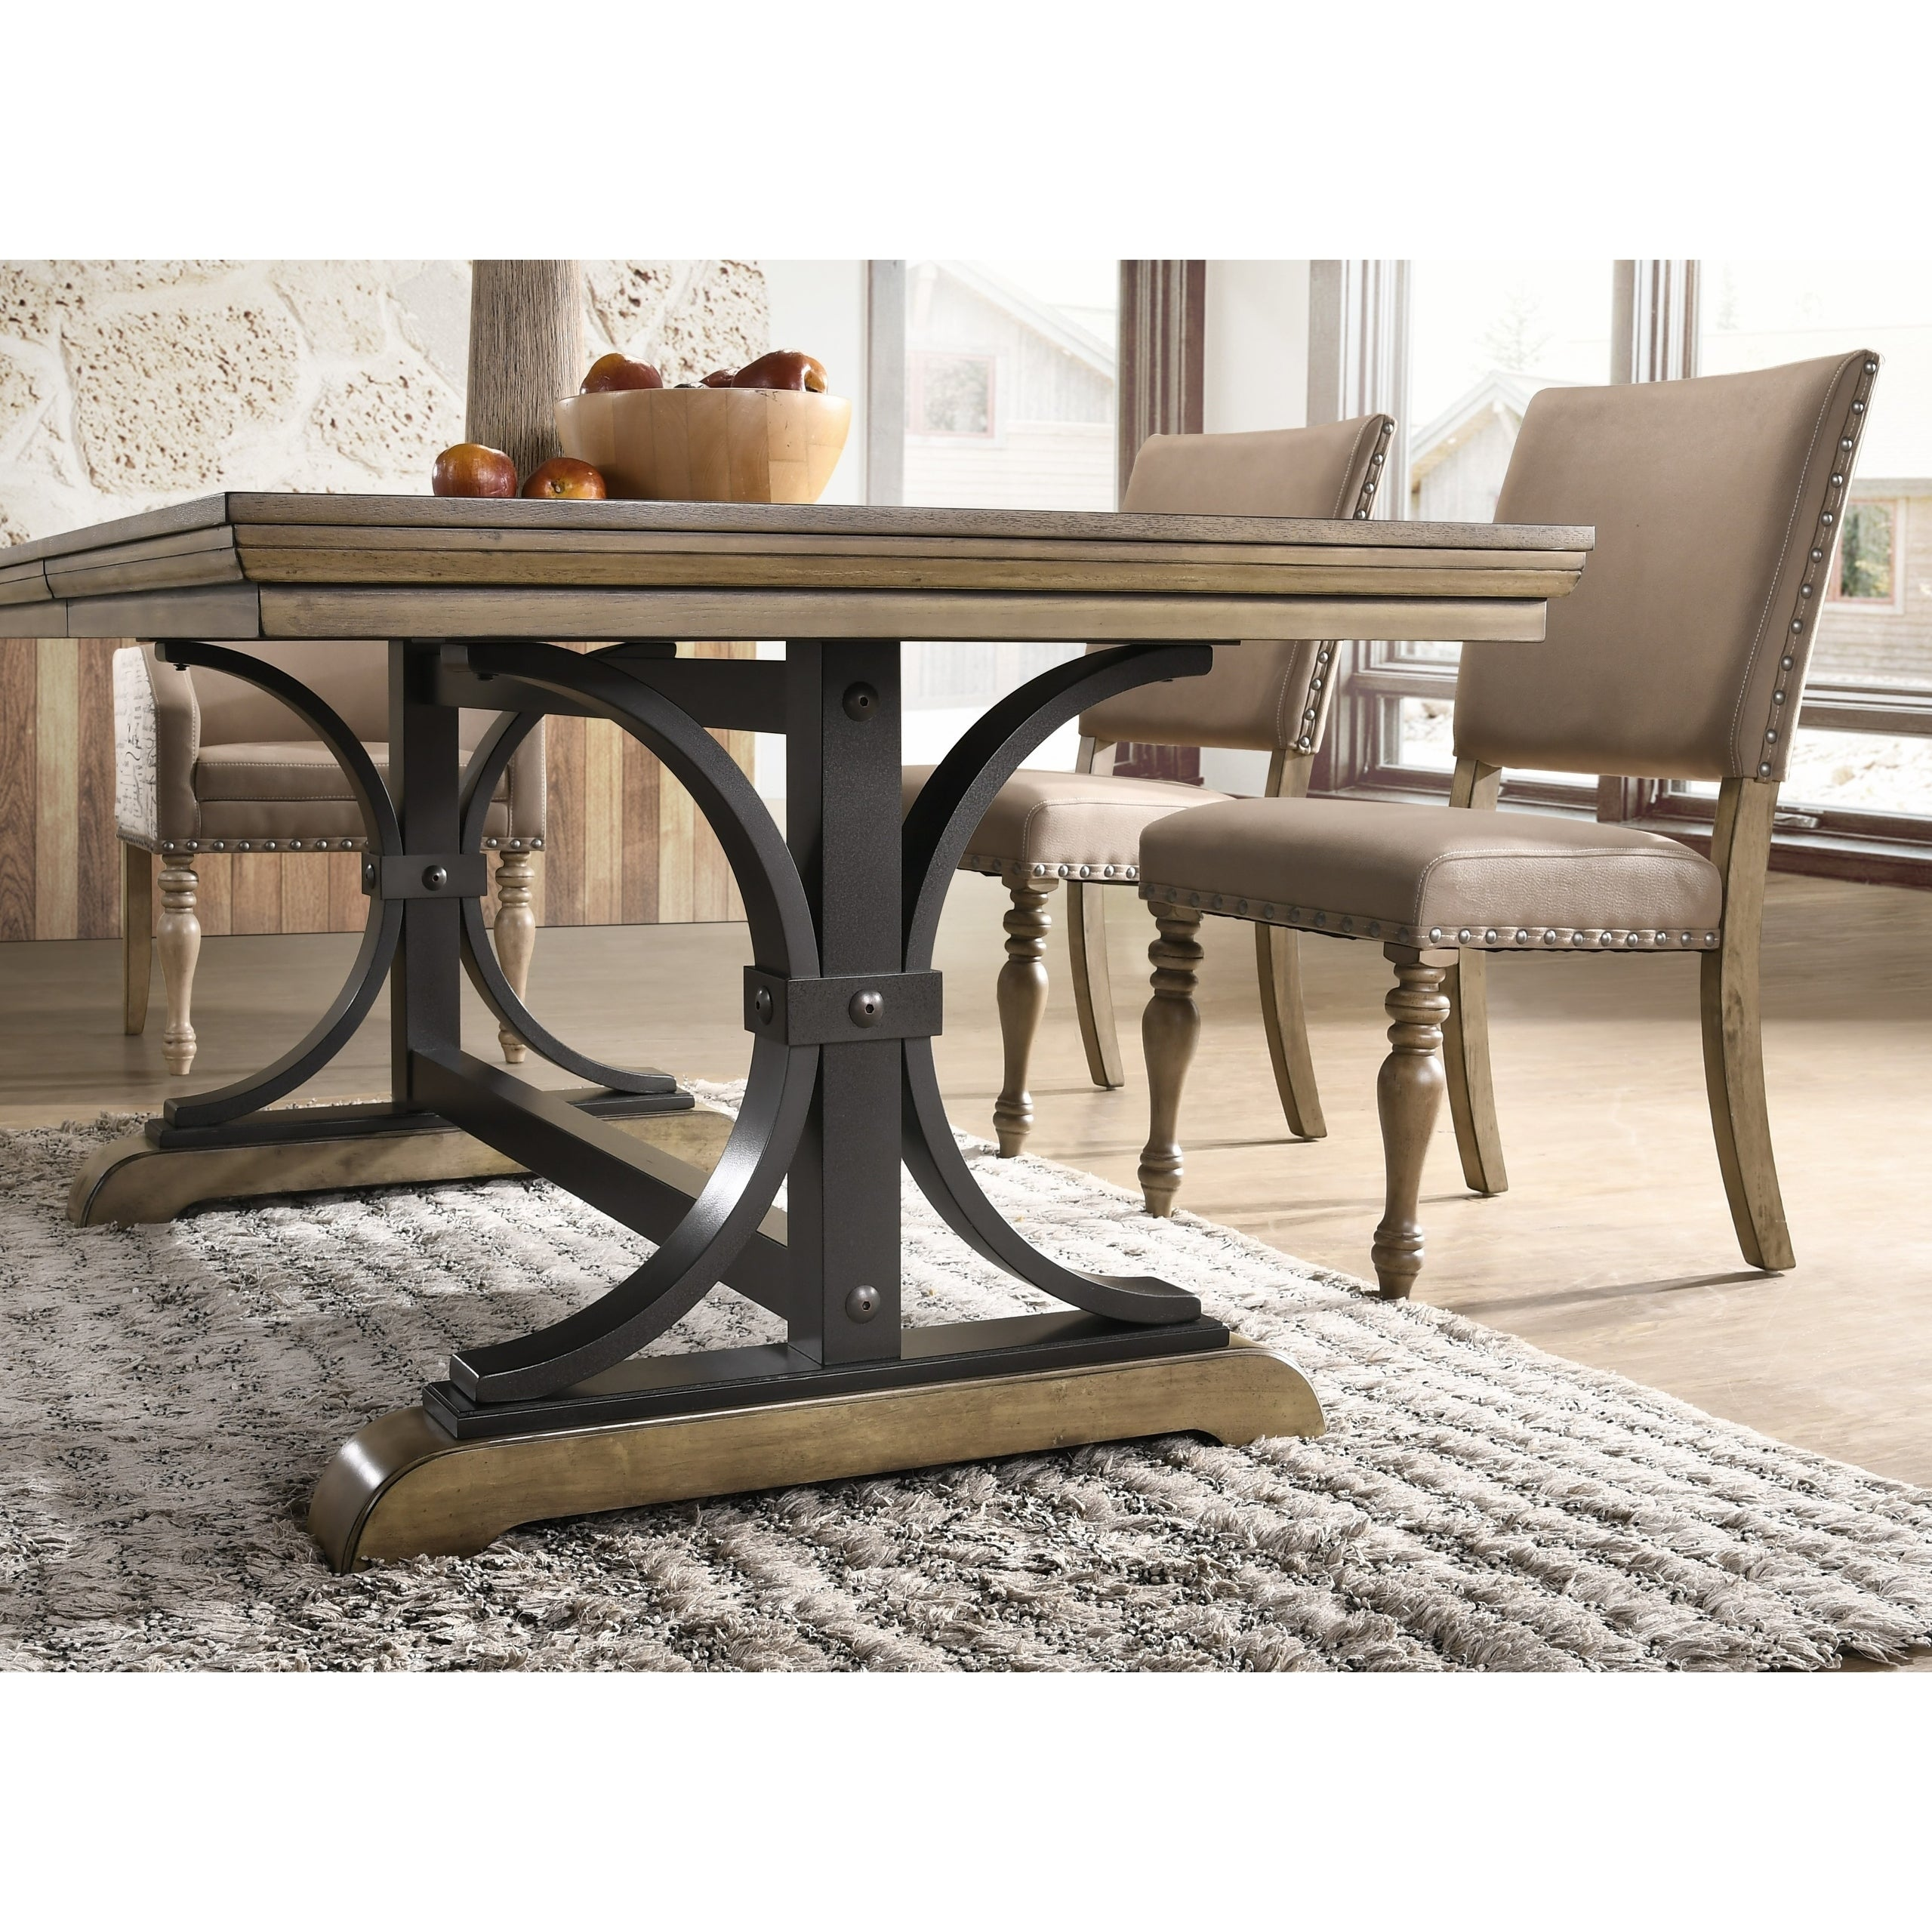 Shop birmingham 9 piece removable leaf table with arm dining chairs set free shipping today overstock 20219238